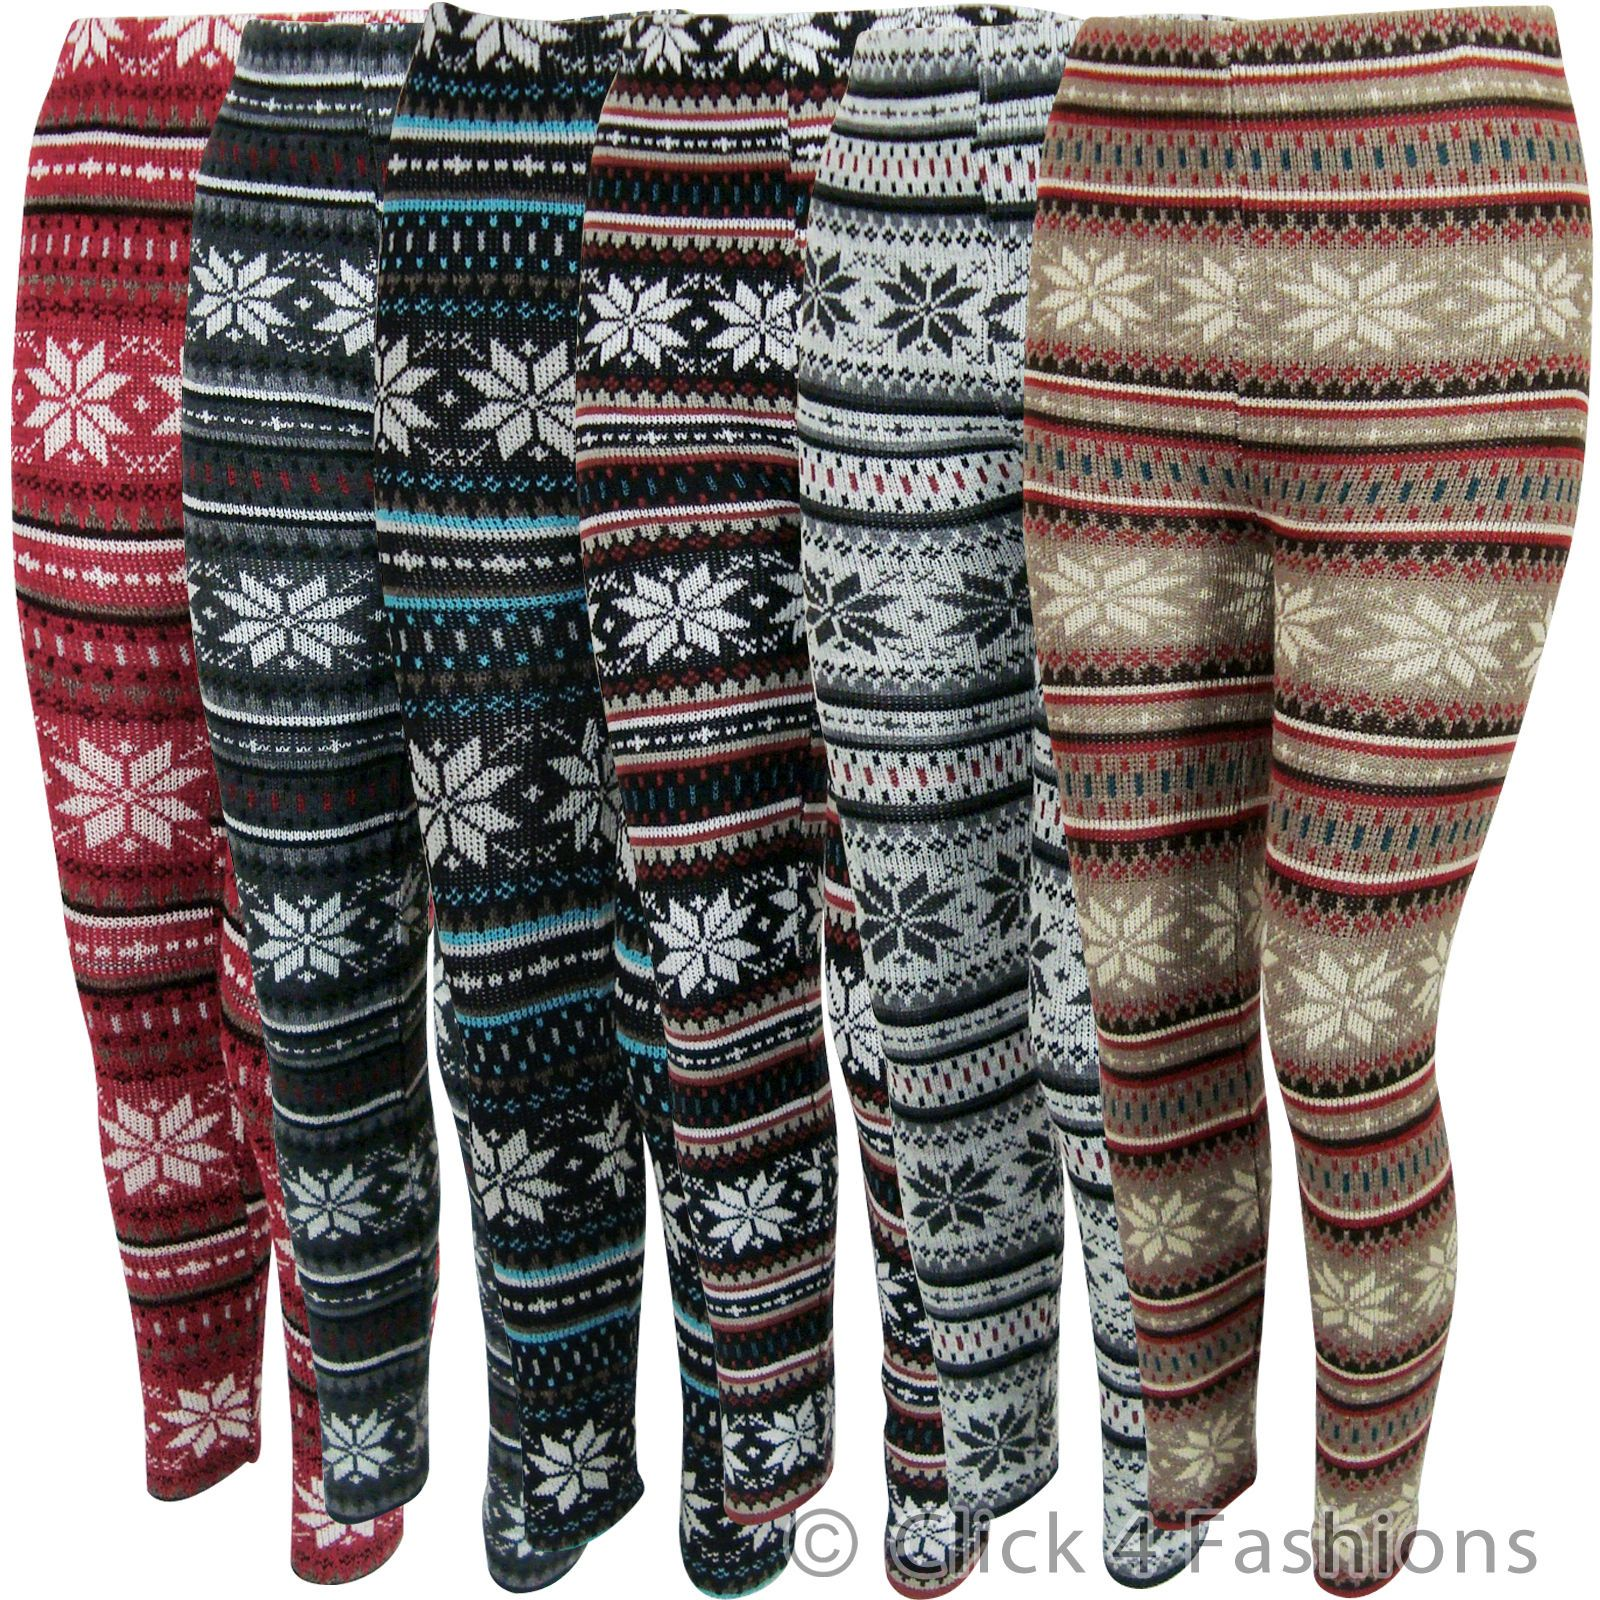 Bunch of woolly leggings again for winter !  http://www.ebay.co.uk/itm/LADIES-WOMENS-WINTER-KNITTED-NORDIC-AZTEC-LEGGINGS-SNOWFLAKE-CHRISTMAS-XMAS-/190889917762?pt=UK_Women_s_Leggins